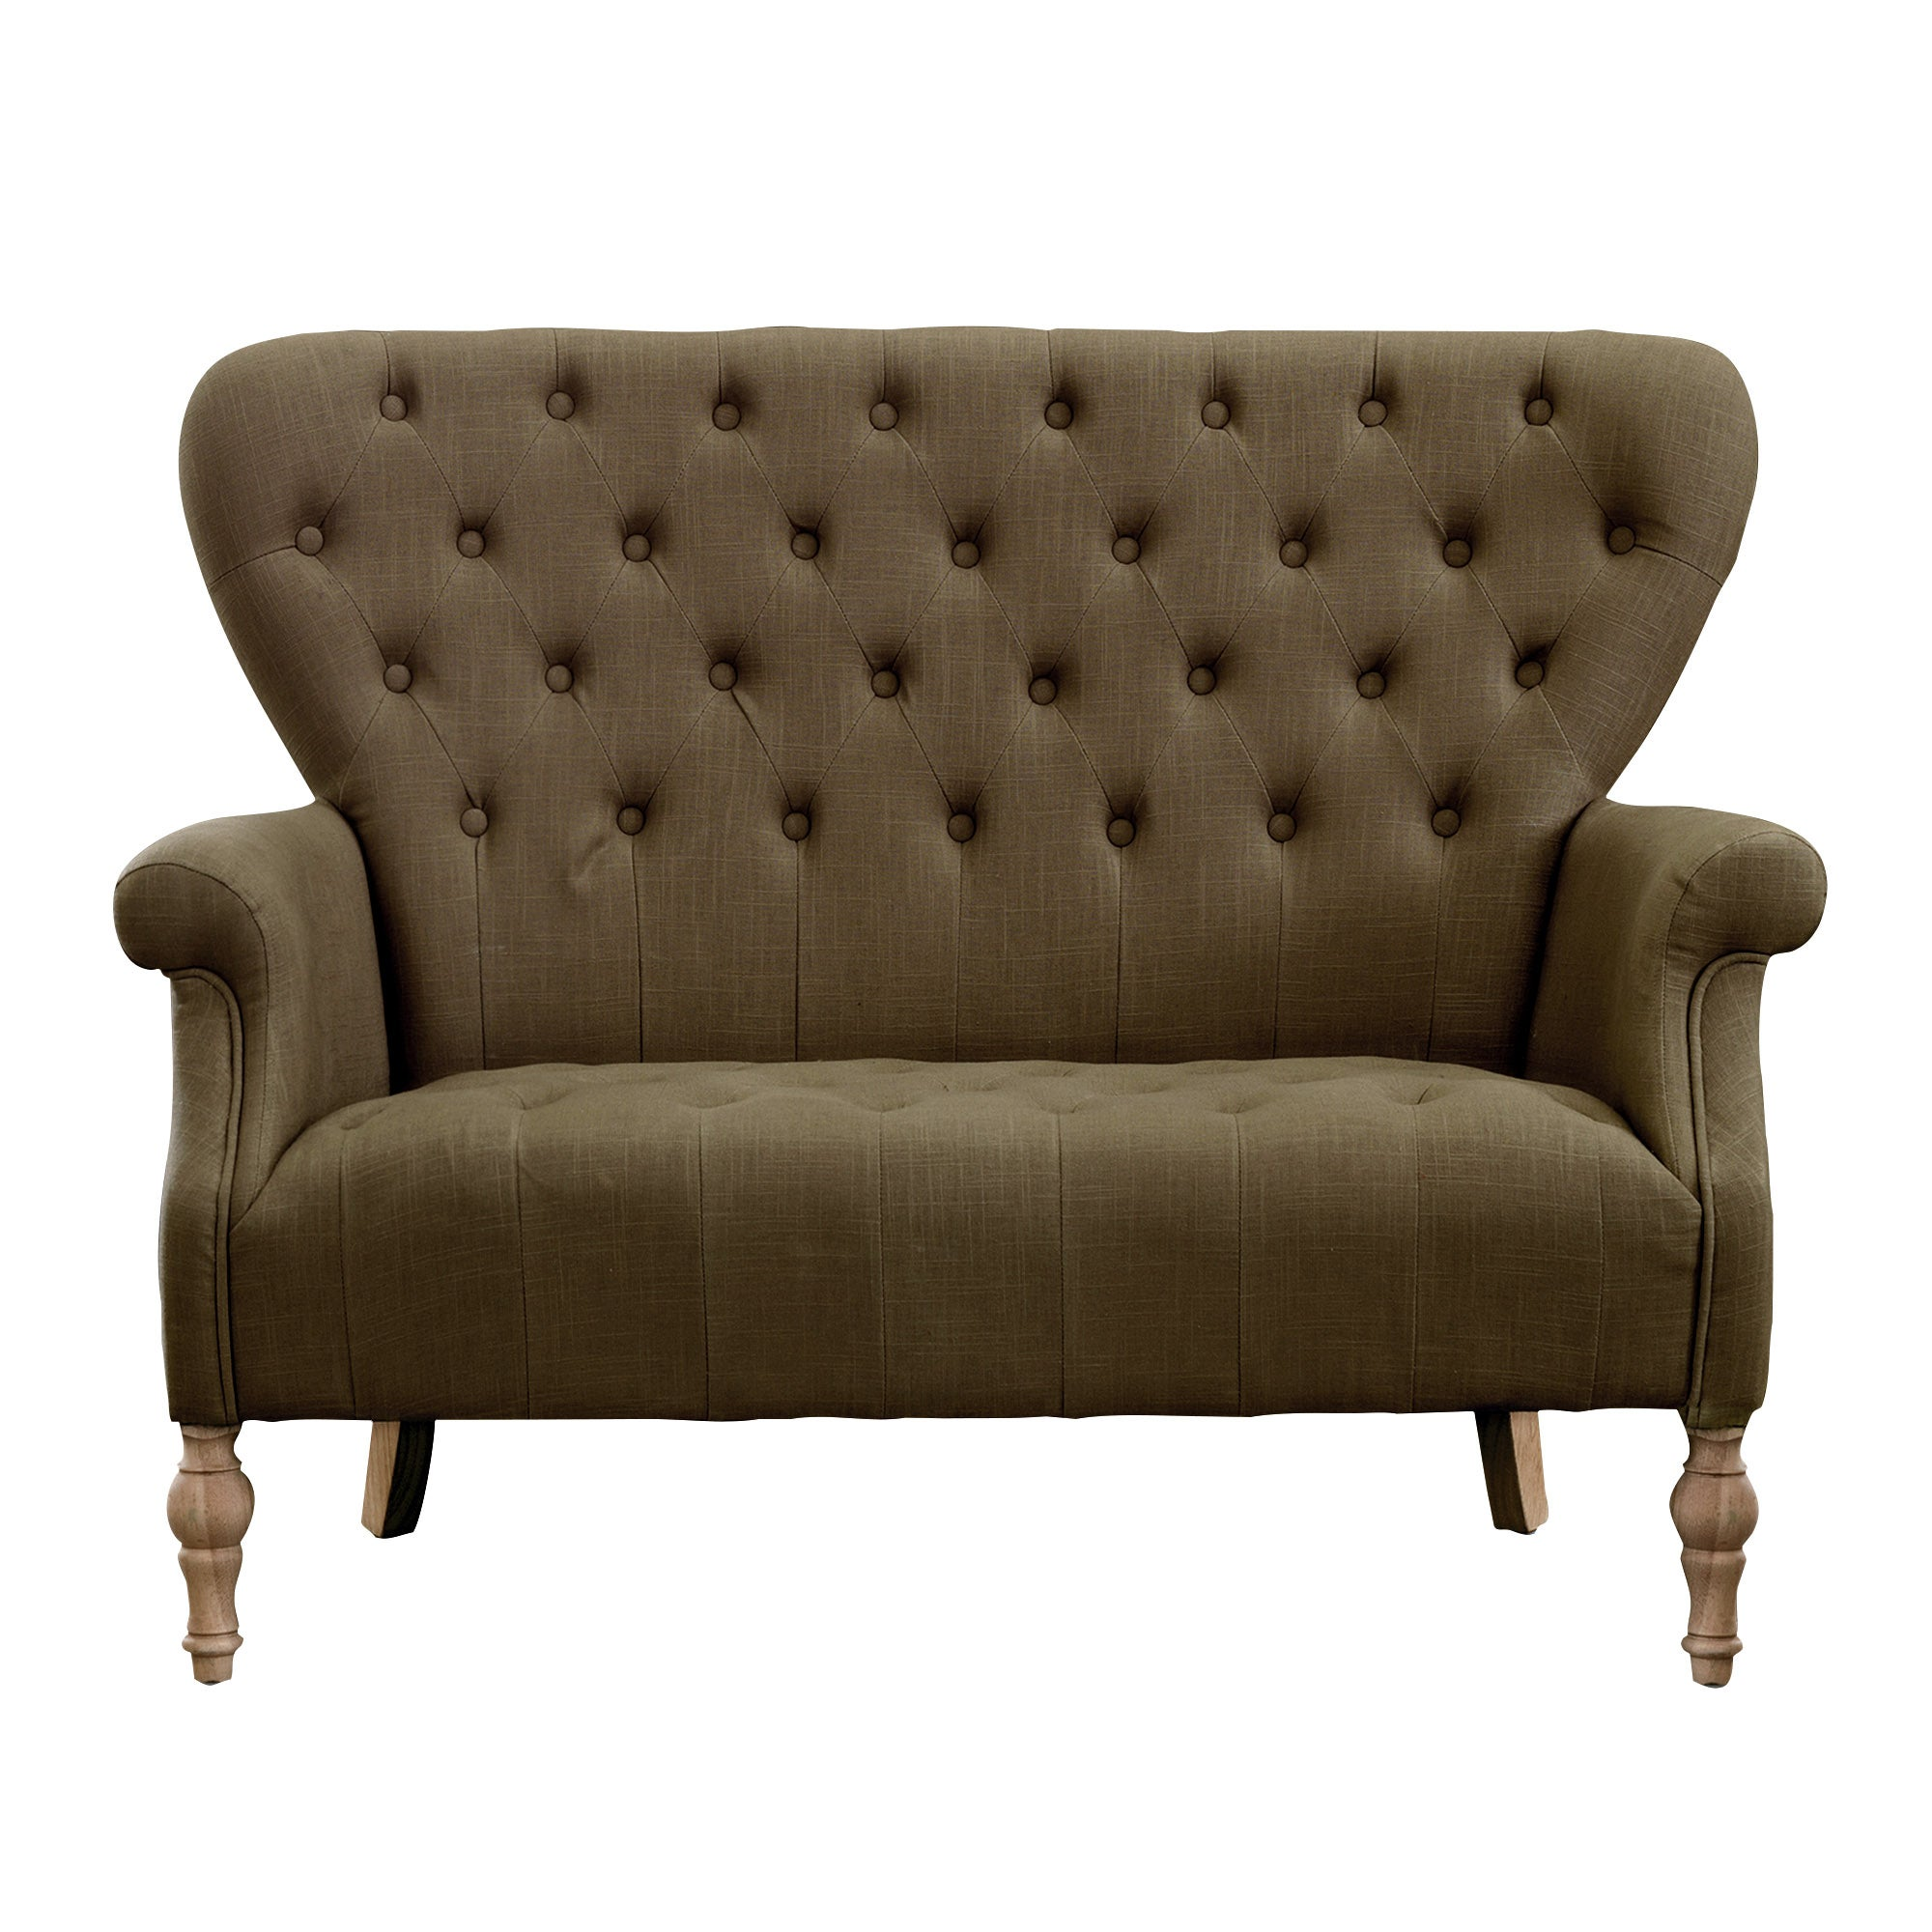 Mink Collette Sofa